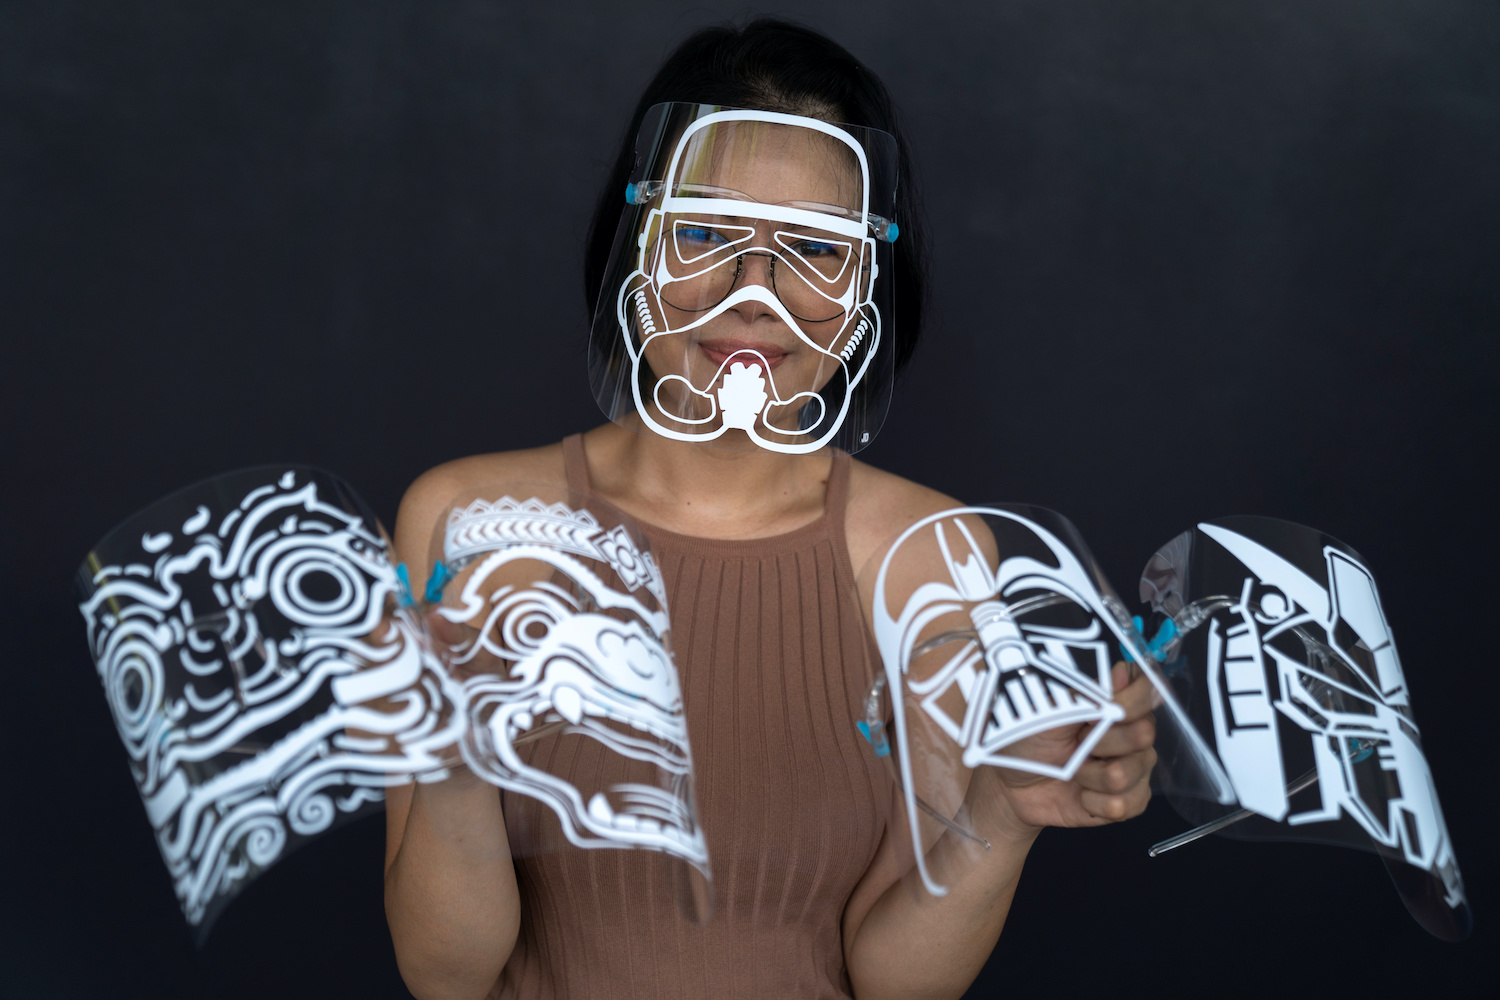 Maysa Talerd models a Star Wars stormtrooper face shield and shows other versions that draw on everything from cartoons to Khon. (Reuters Photo)